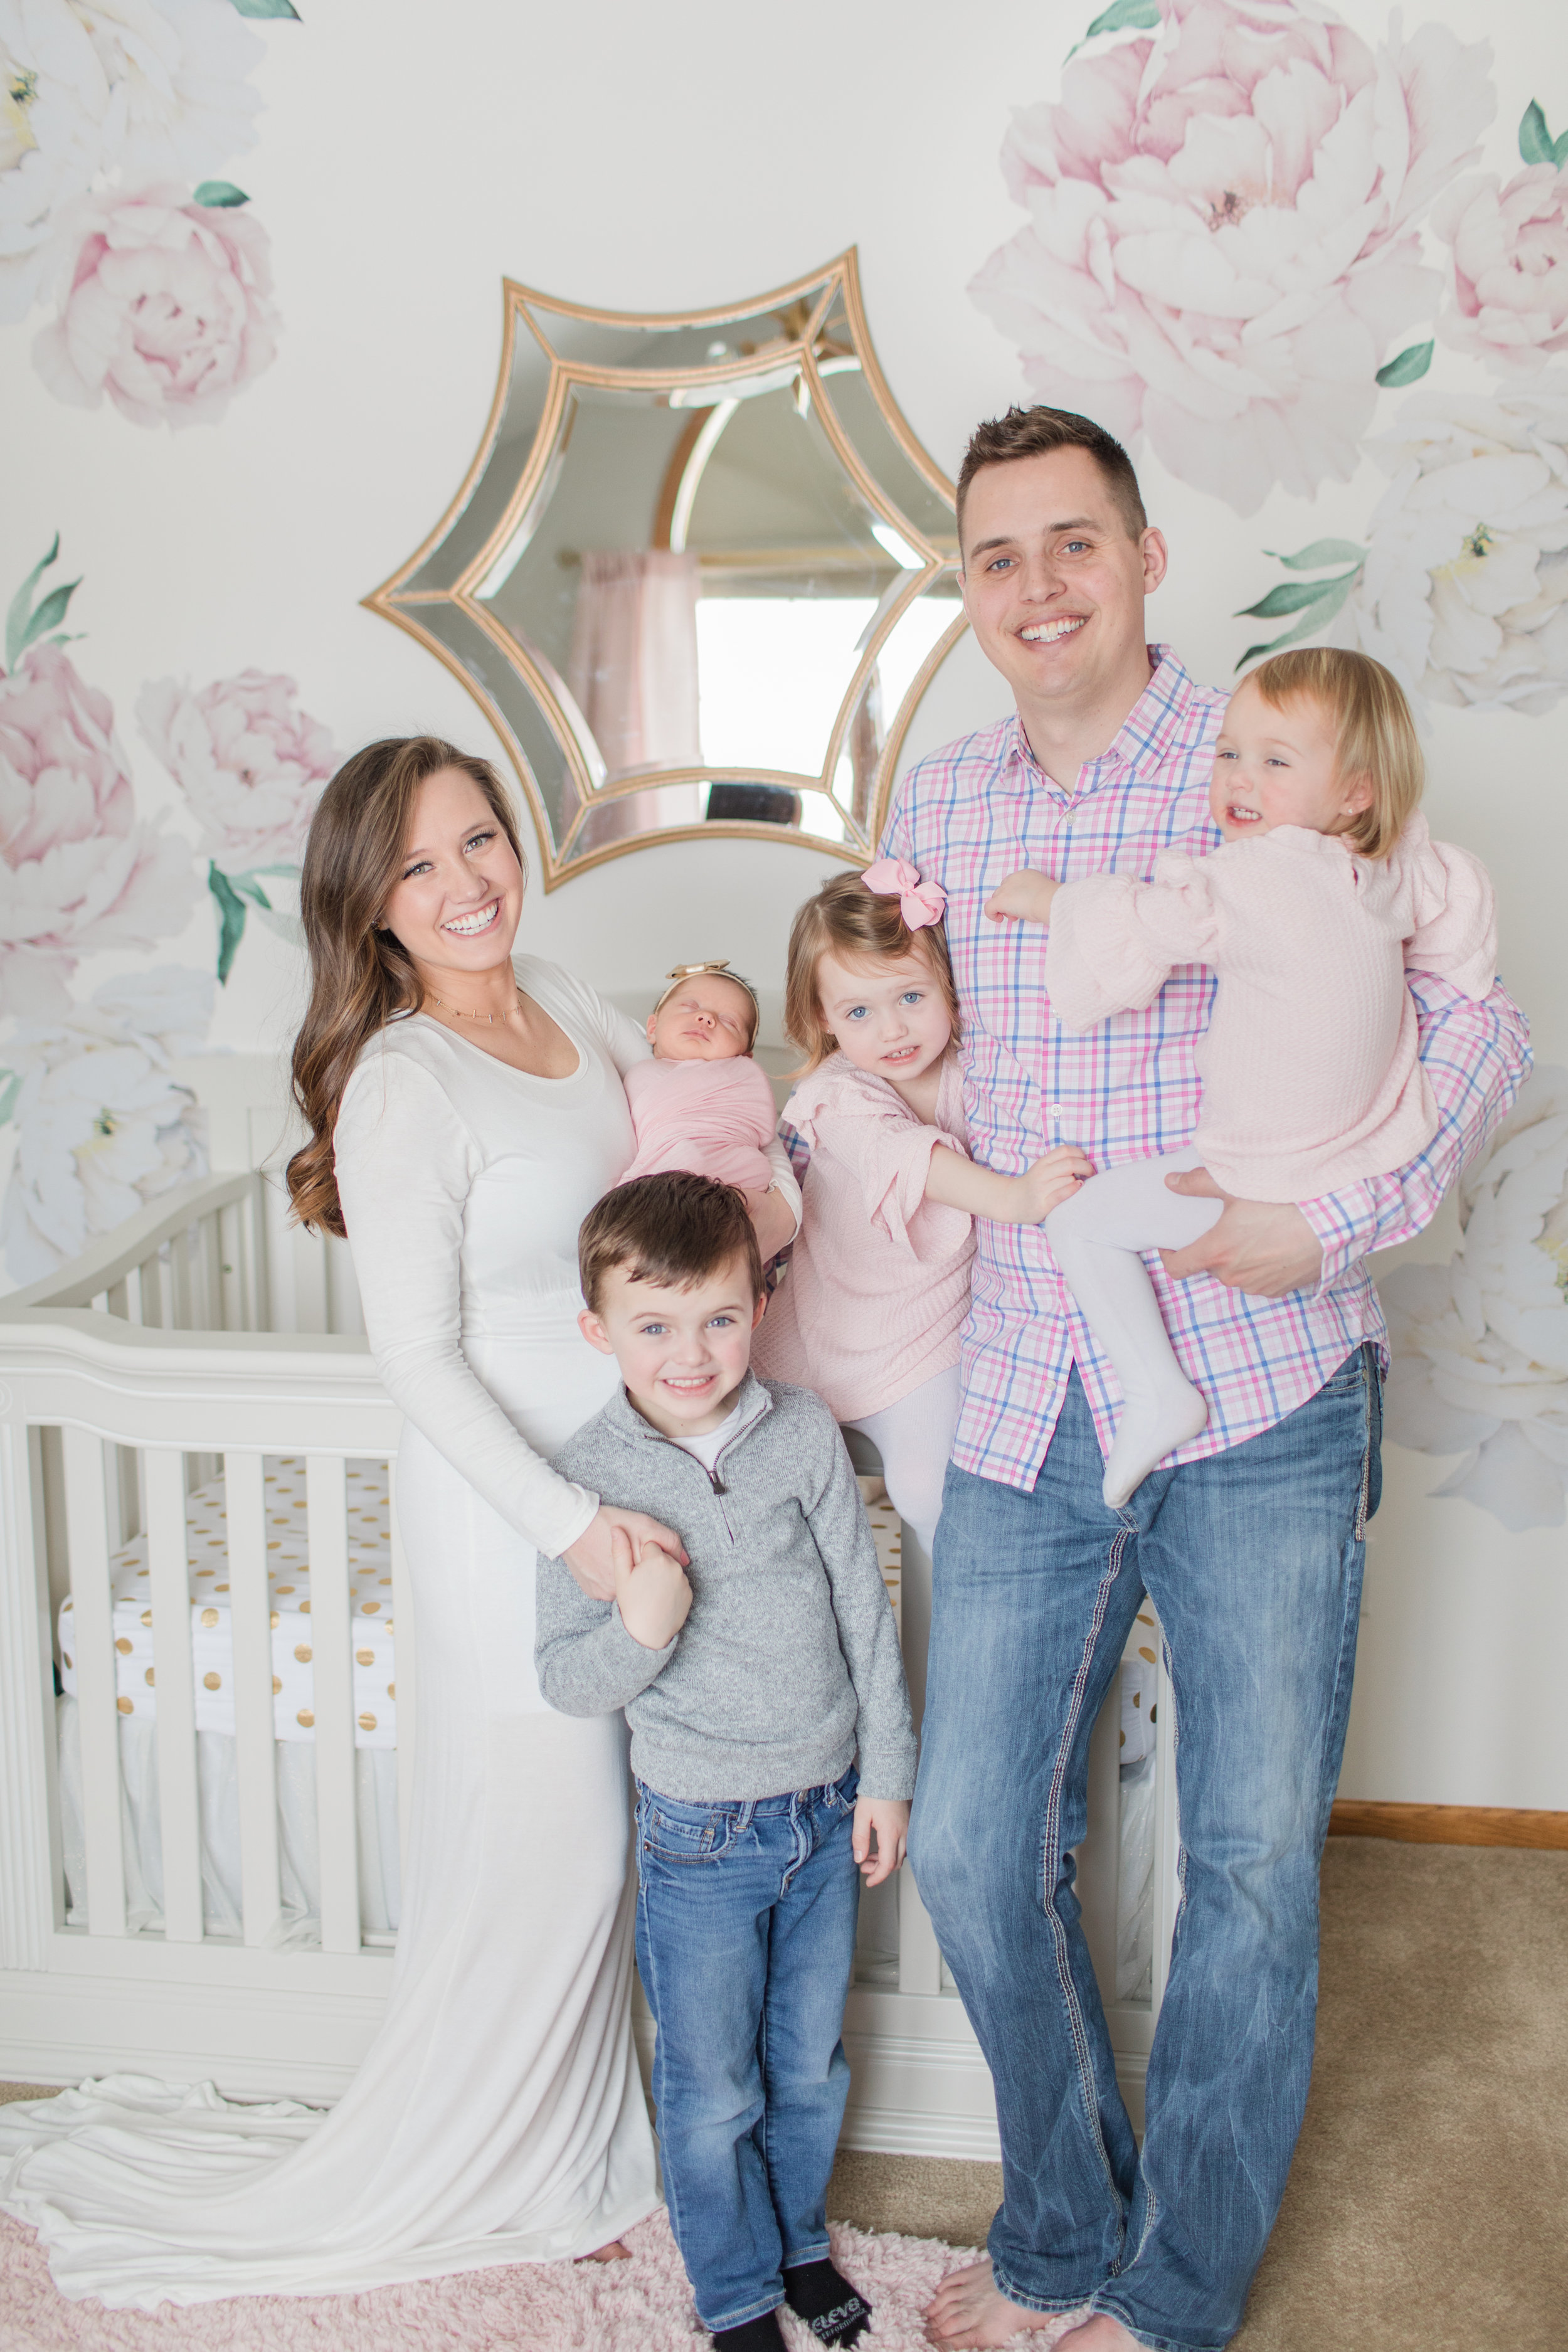 whole family picture with newborn baby girl